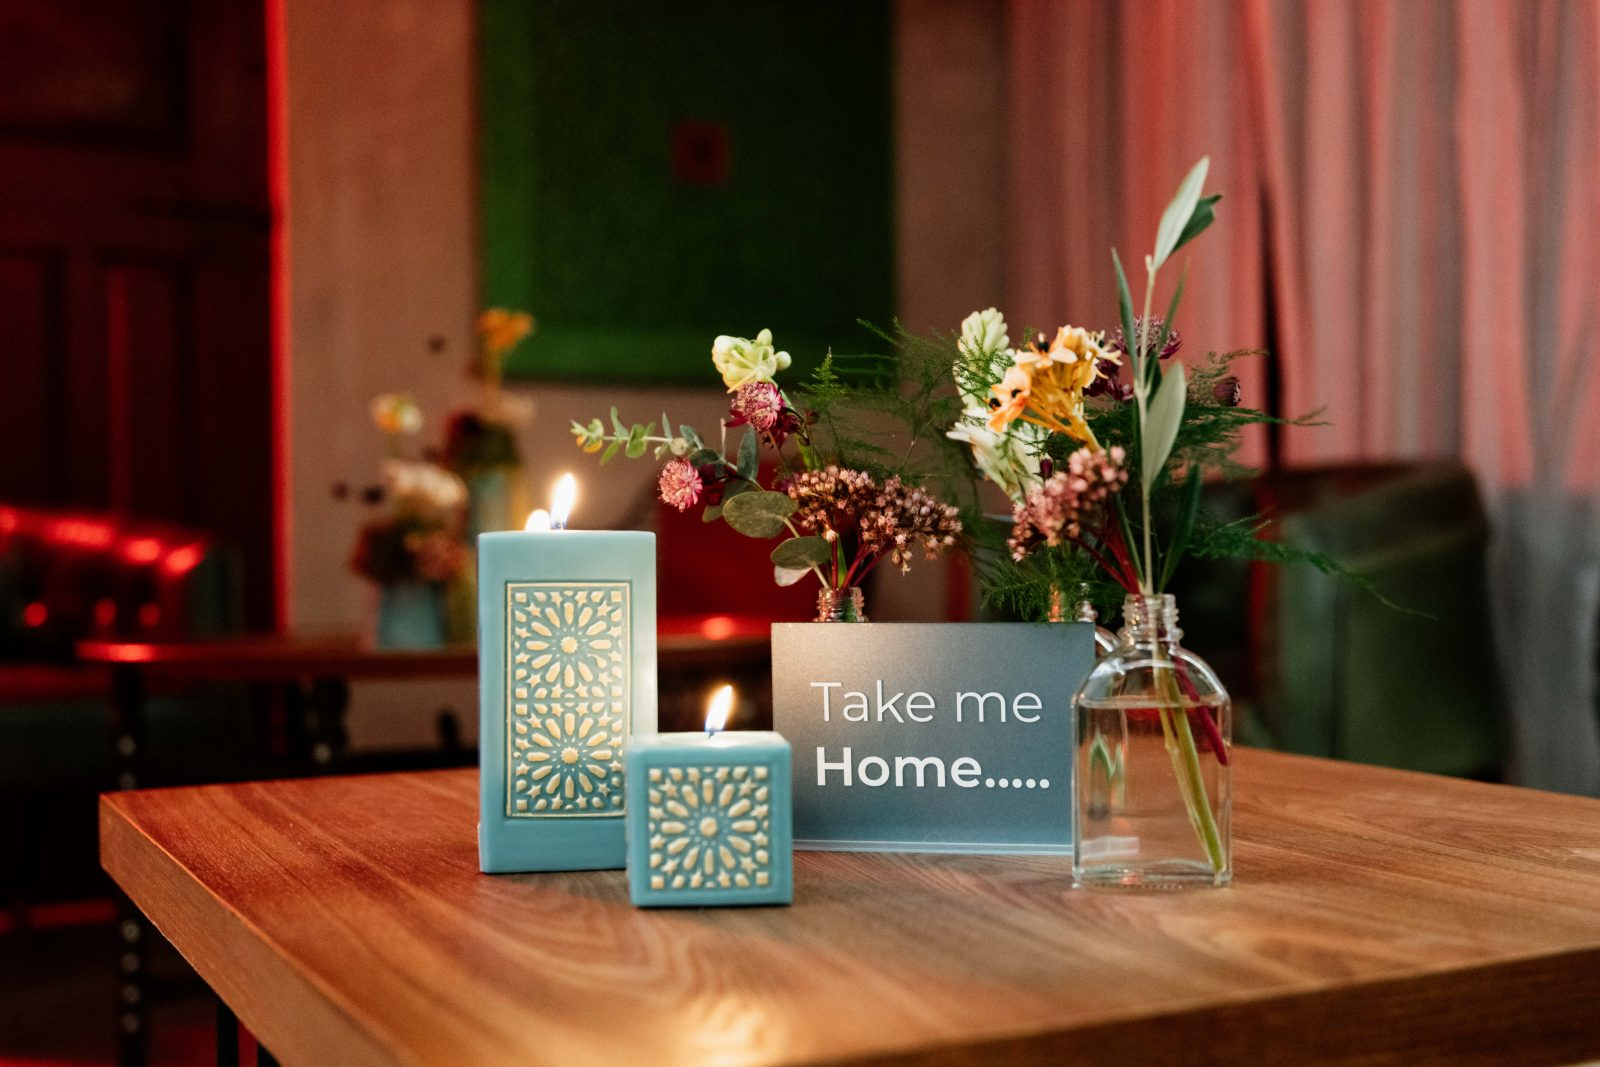 Wild flower and luxury candle arrangement on wooden table